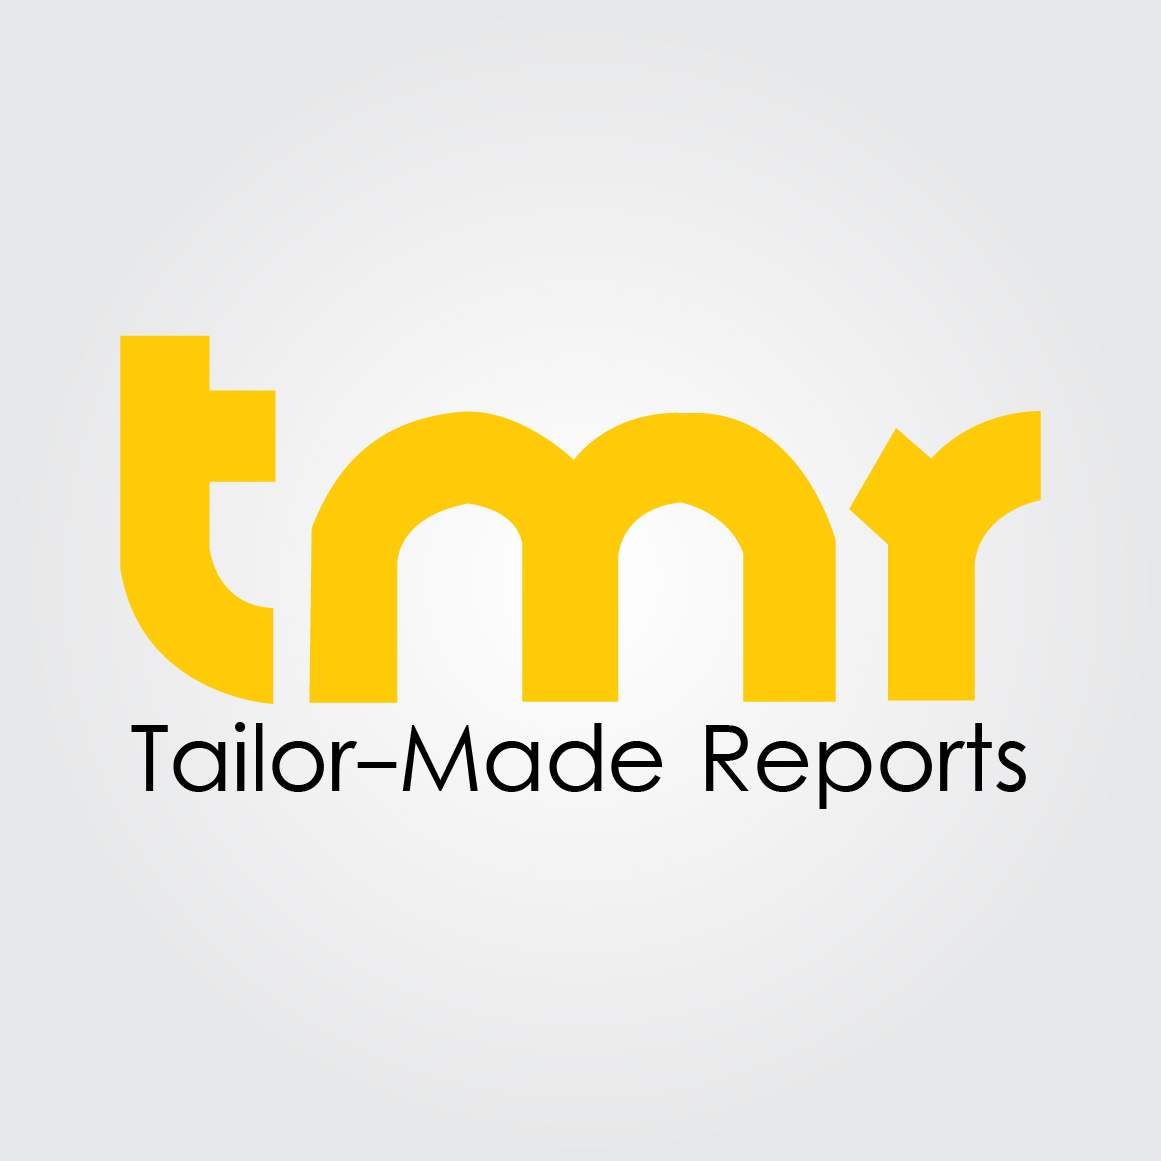 Chlorothalonil Market - Leather Industry is likely to Upsurge the Demand for the Chlorothalonil